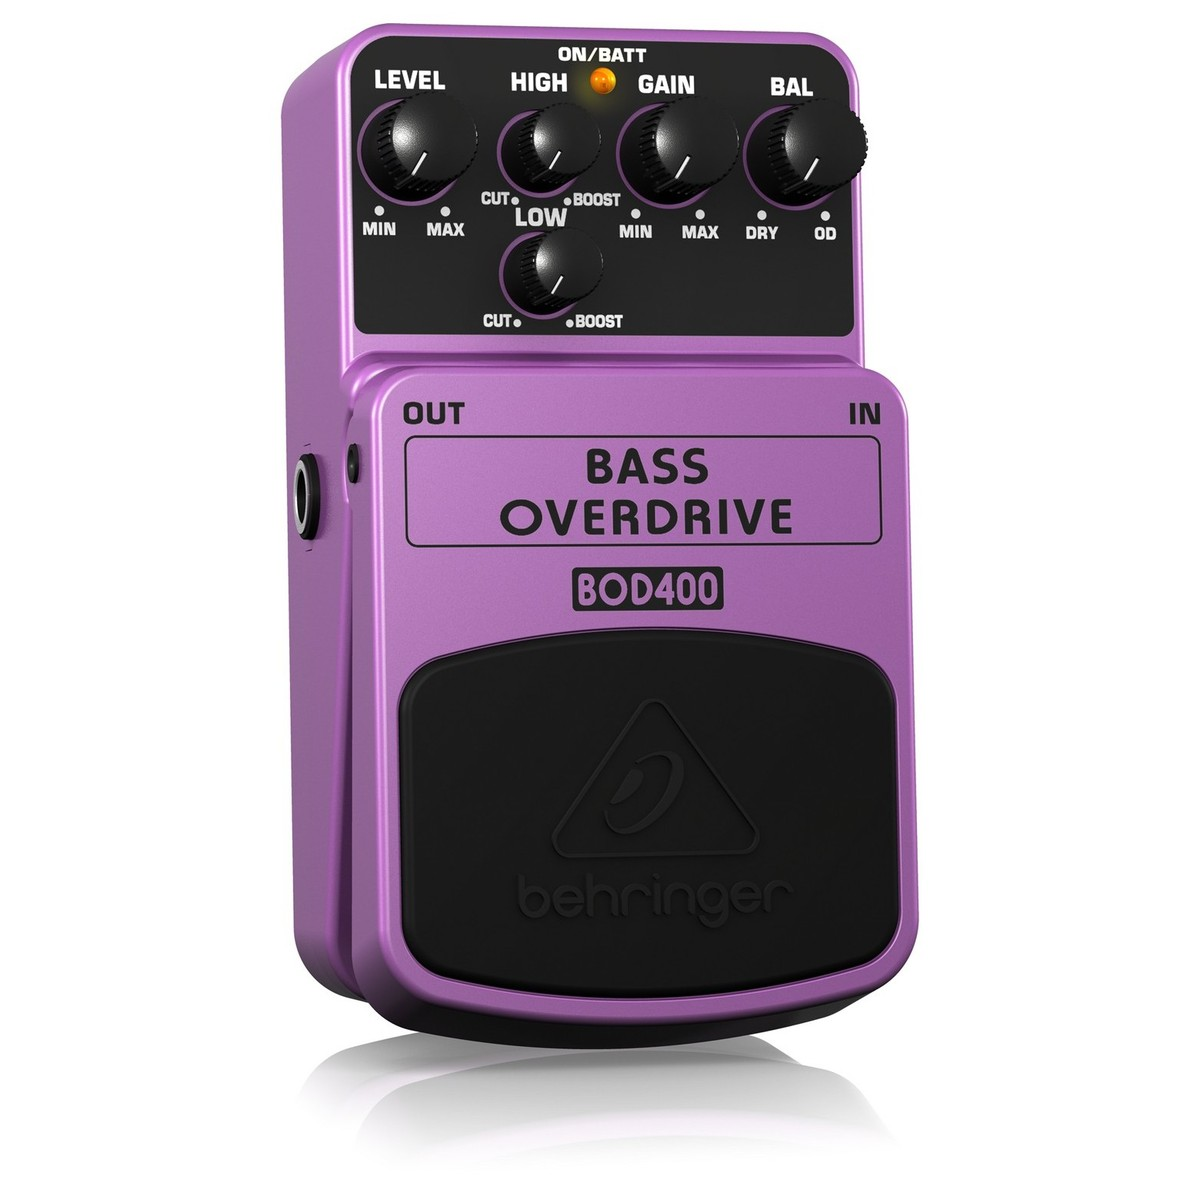 Behringer BOD400 Bass Overdrive Pedal at Gear4music.com